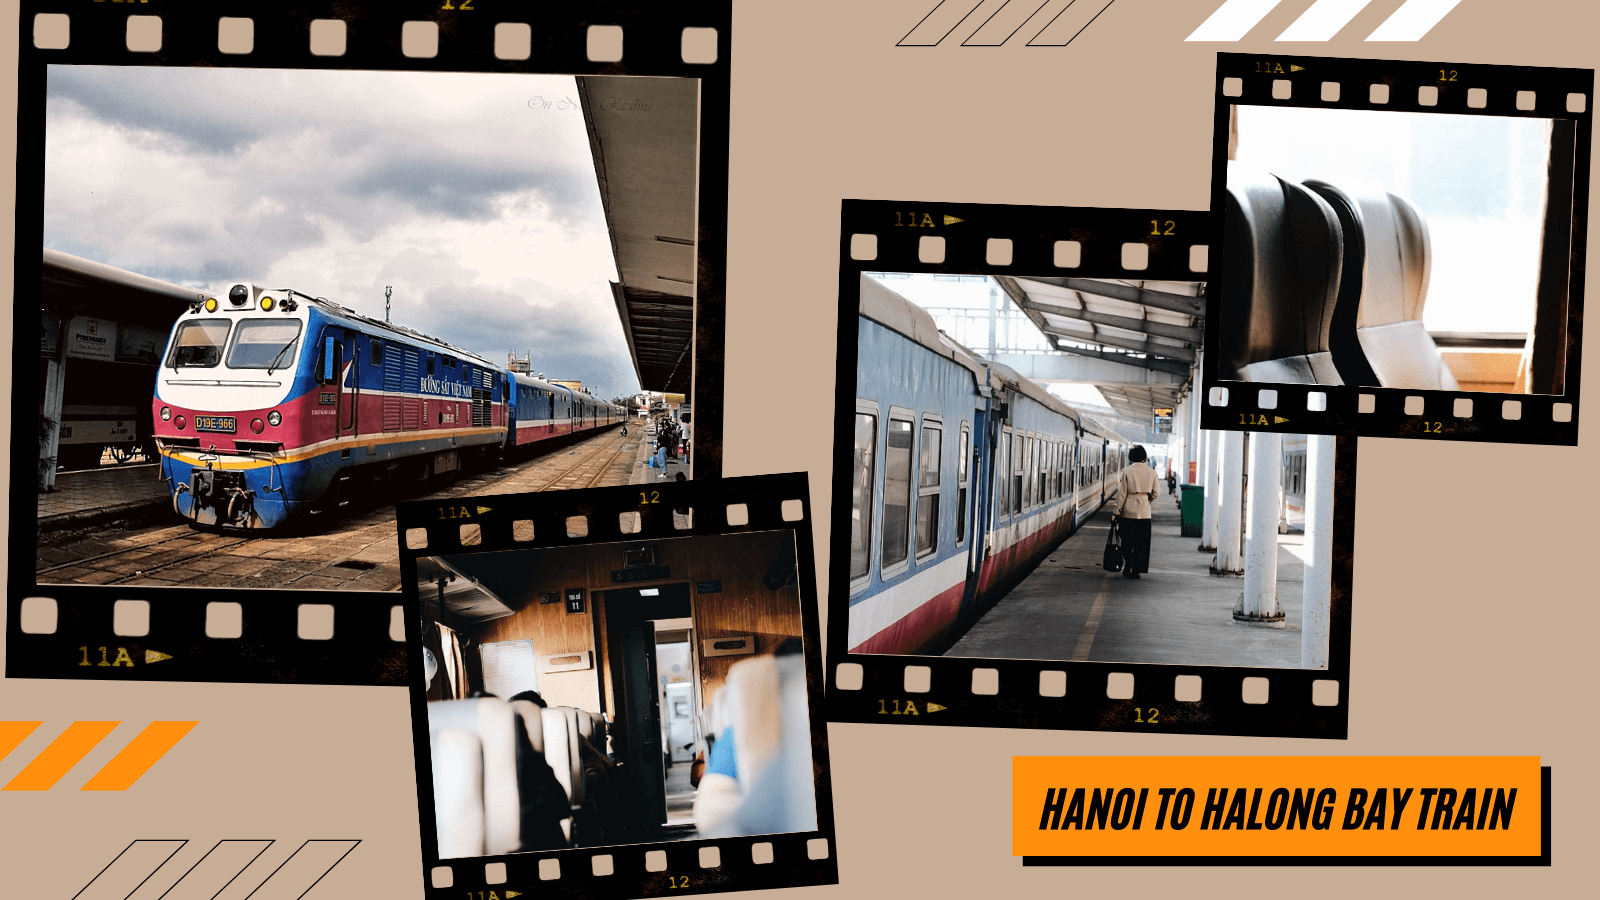 Travel Hanoi to Halong by train